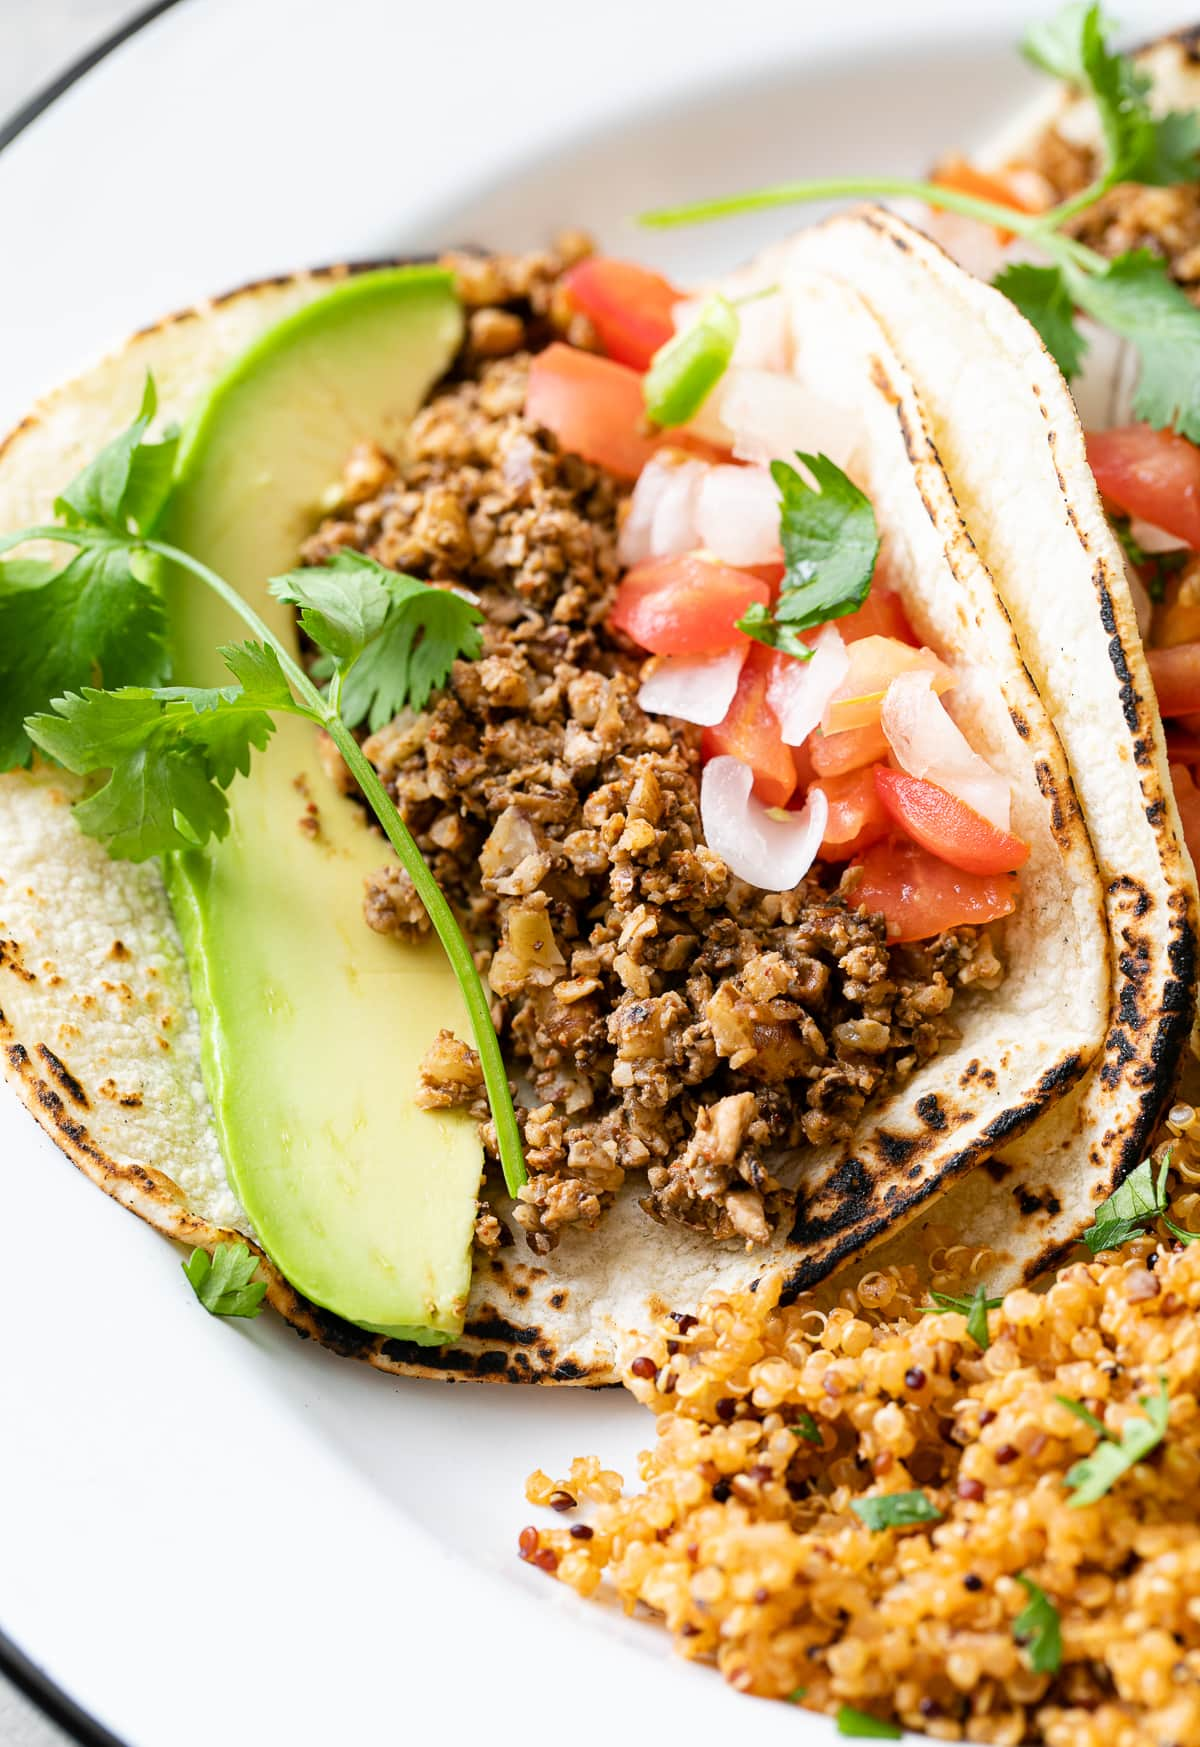 up close view of vegan street tacos with walnut meat on corn tortillas.